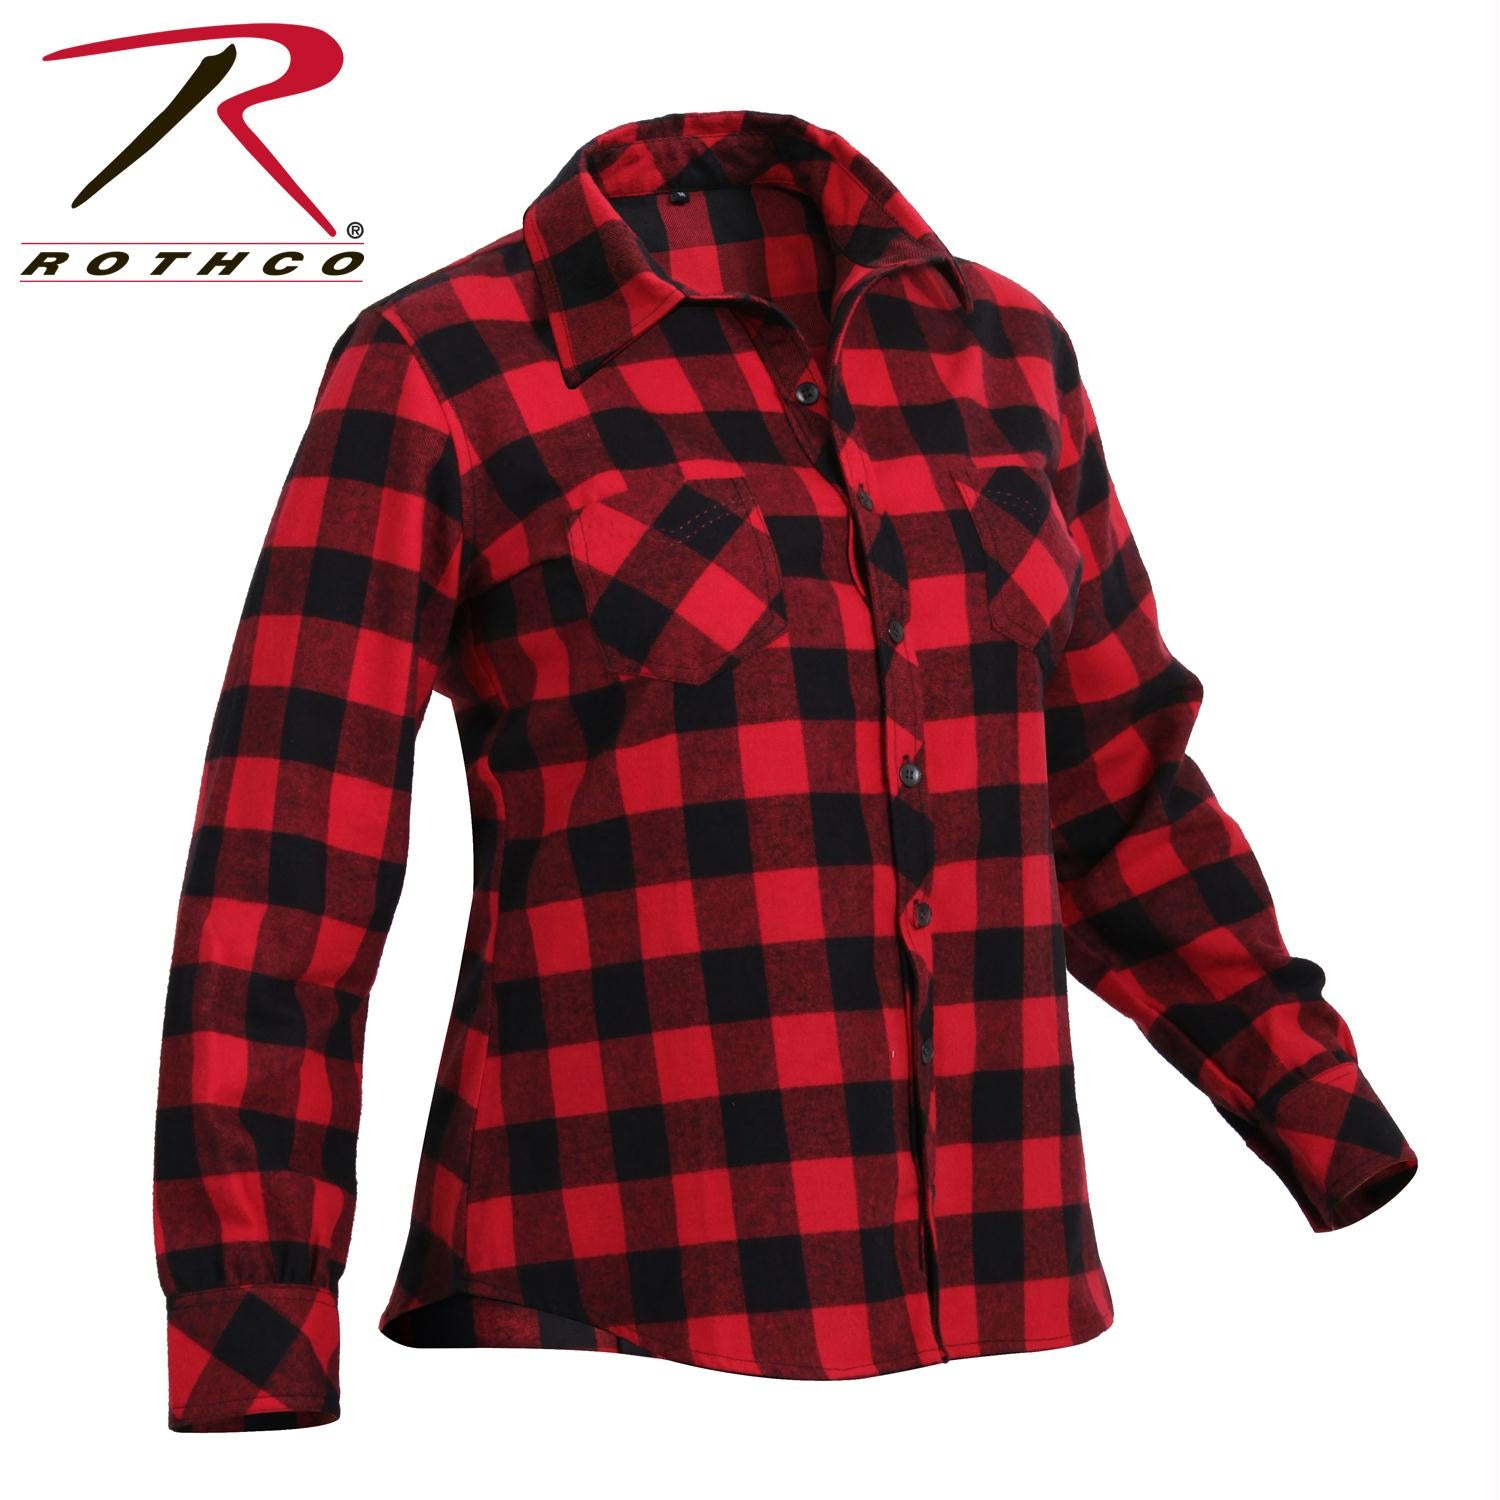 Rothco Womens Plaid Flannel Shirt - Red / Black / XS